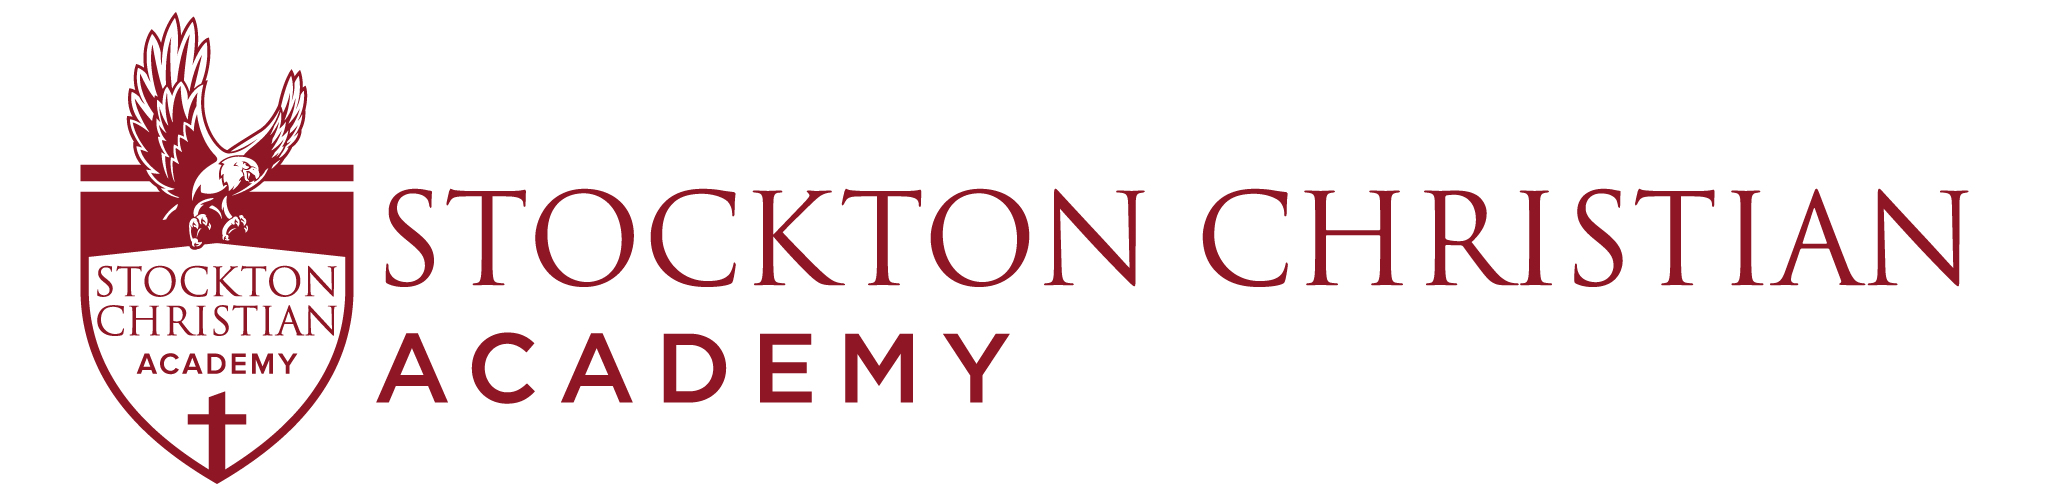 Stockton Christian Academy